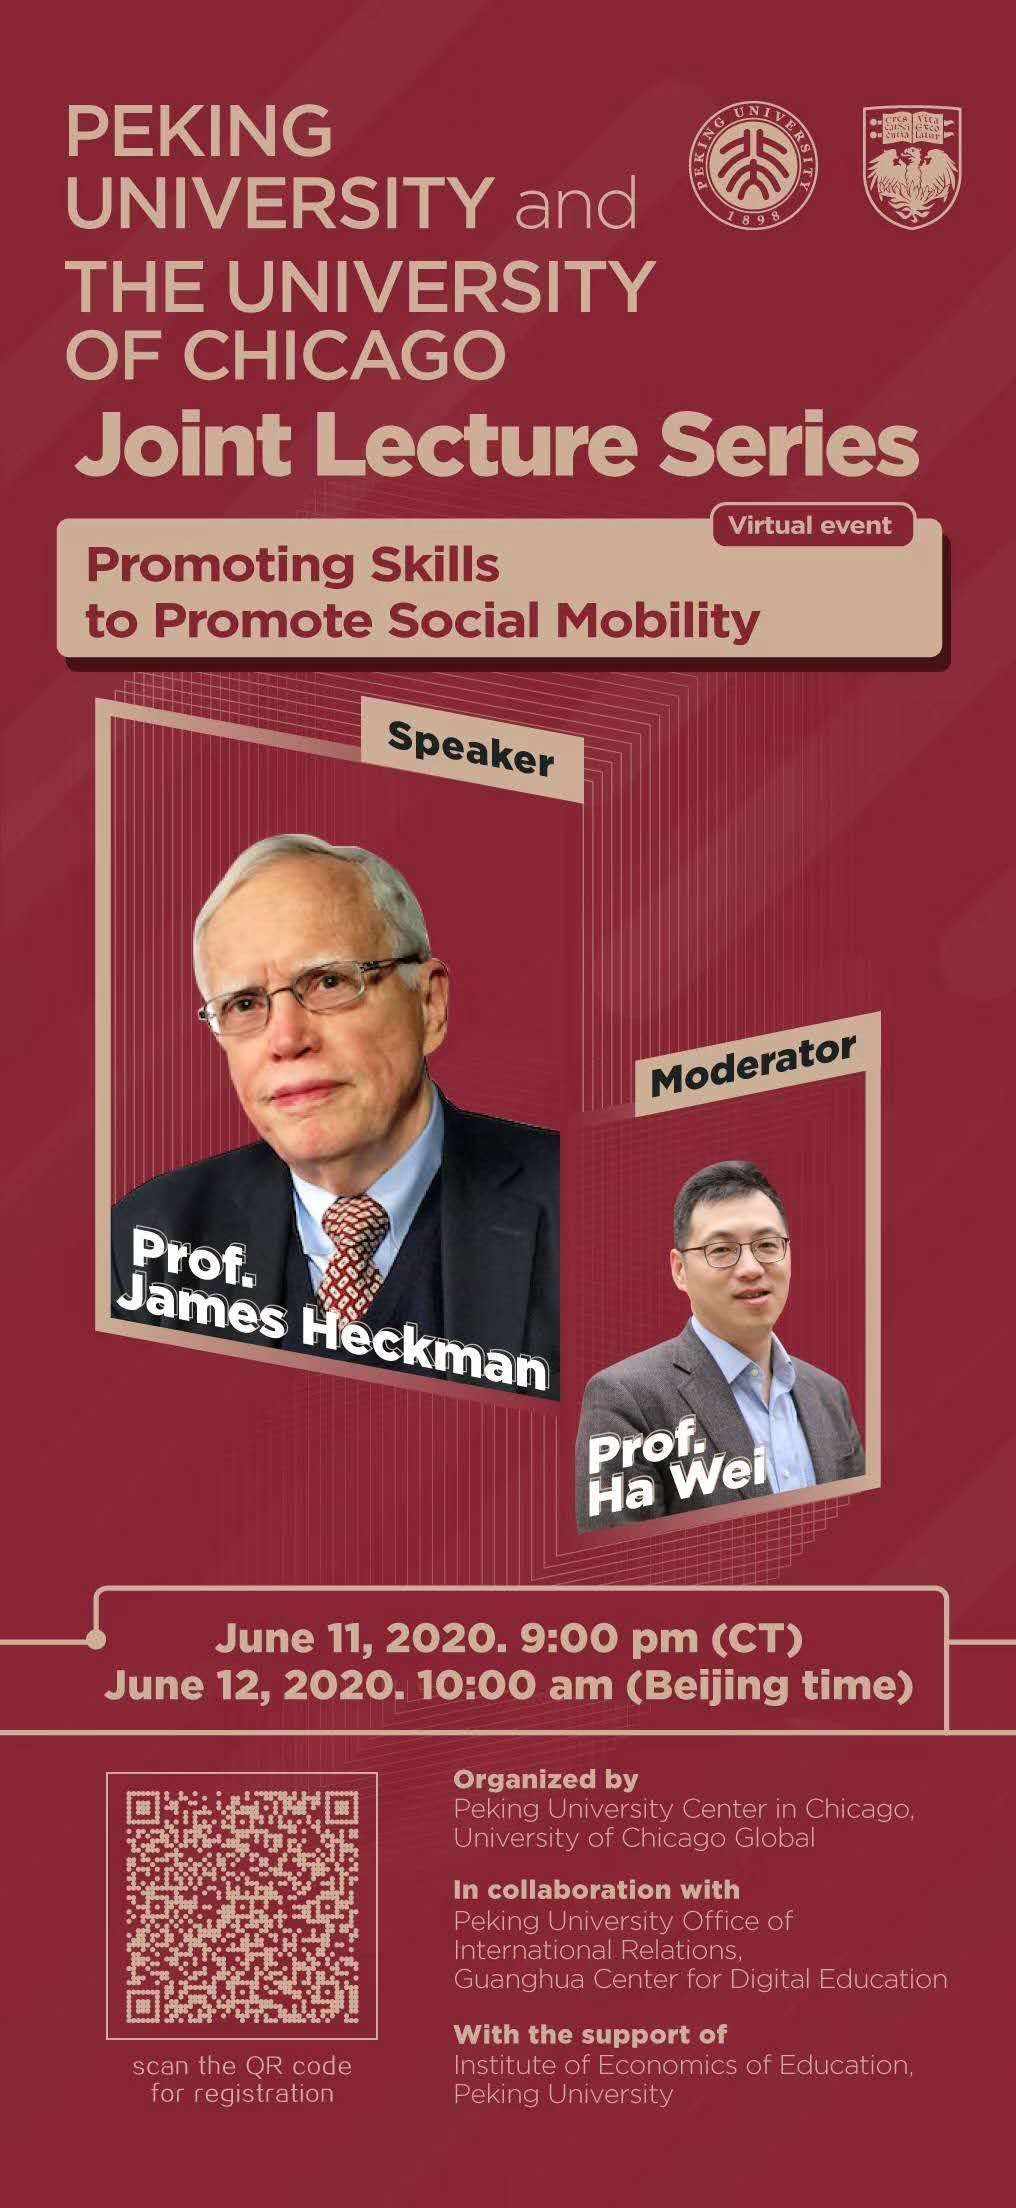 """Graphic reads """"Peking University and The University of Chicago Joint Lecture Series Promoting Skills to Promote Social Mobility"""" with speakers Prof. James Heckman and Prof. Ha Wei pictured."""